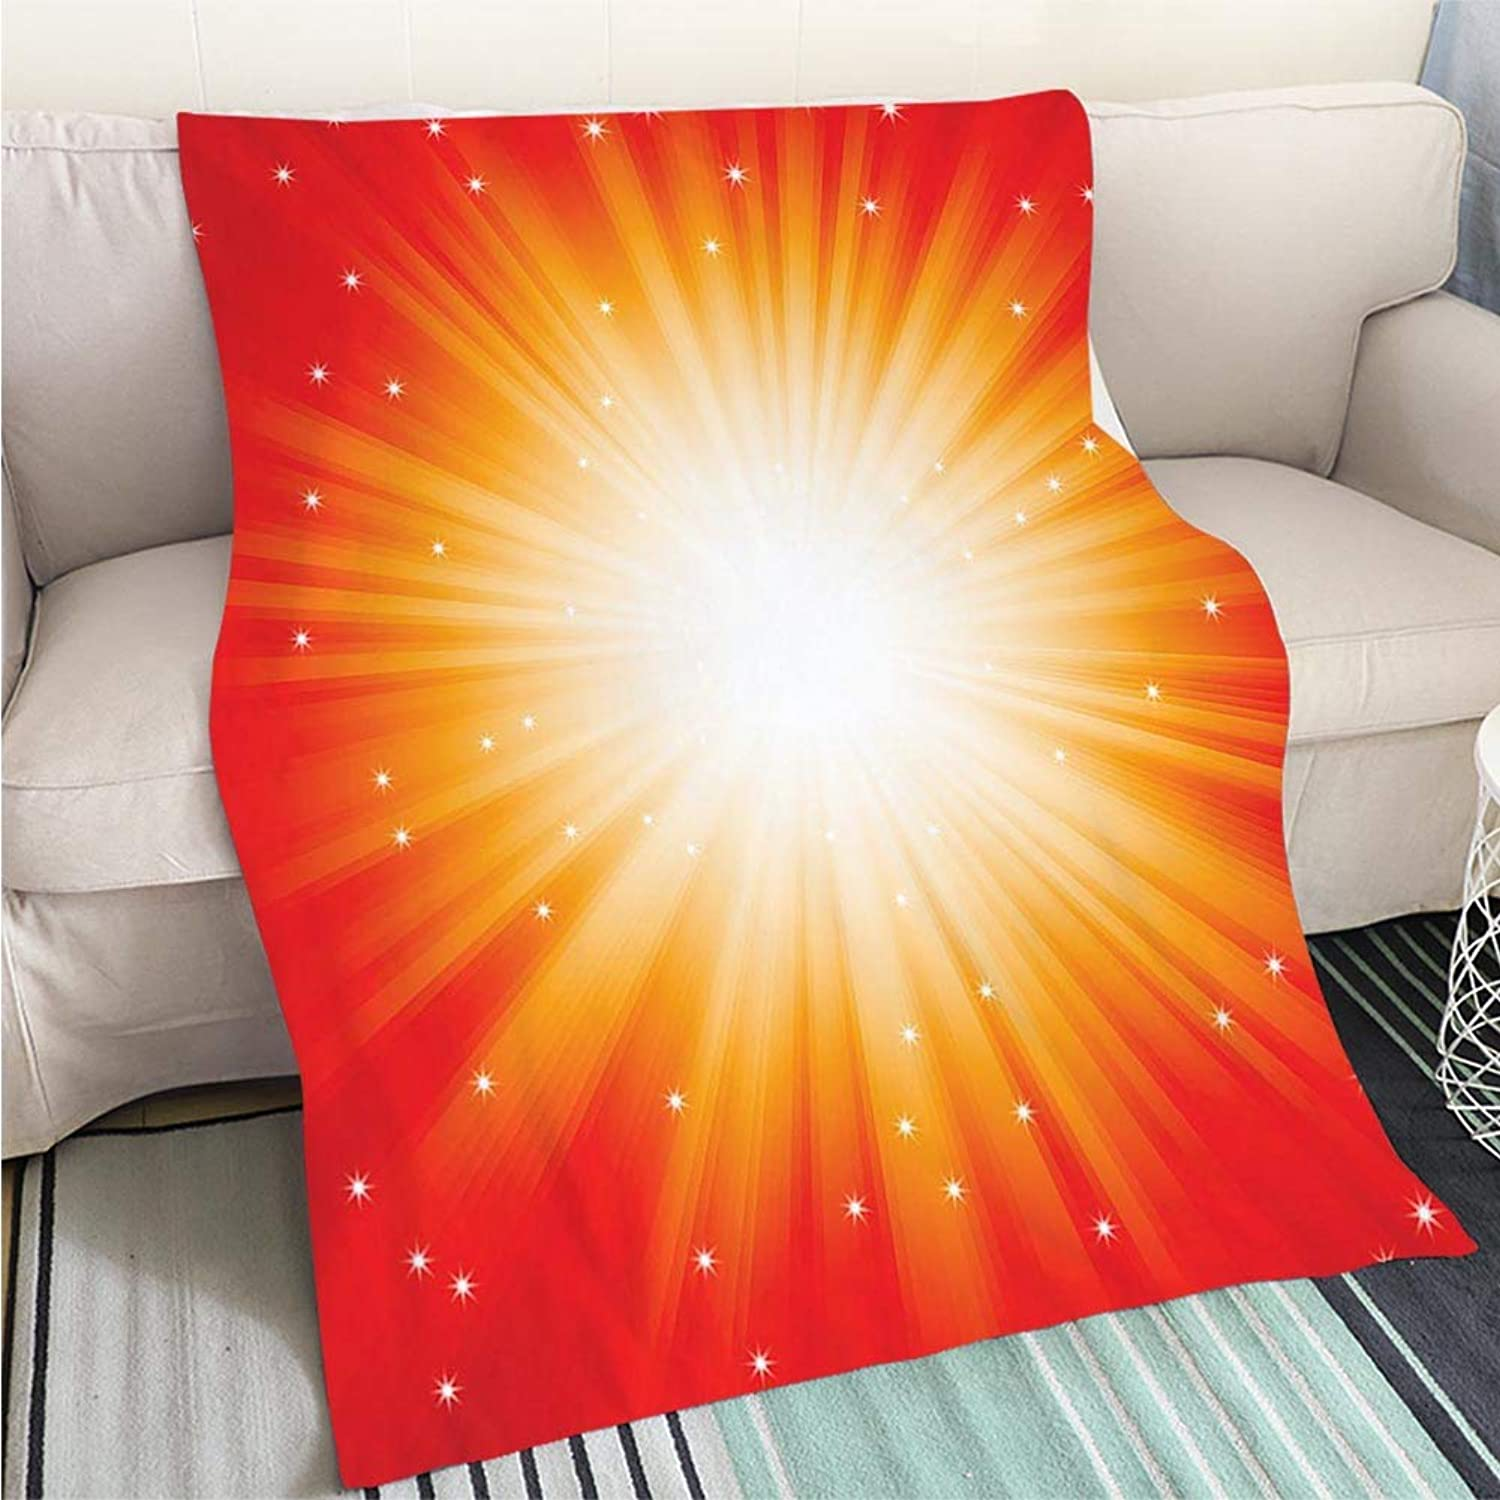 Comforter Multicolor Bed or Couch Red Burst of Light with Sparkles Perfect for Couch Sofa or Bed Cool Quilt